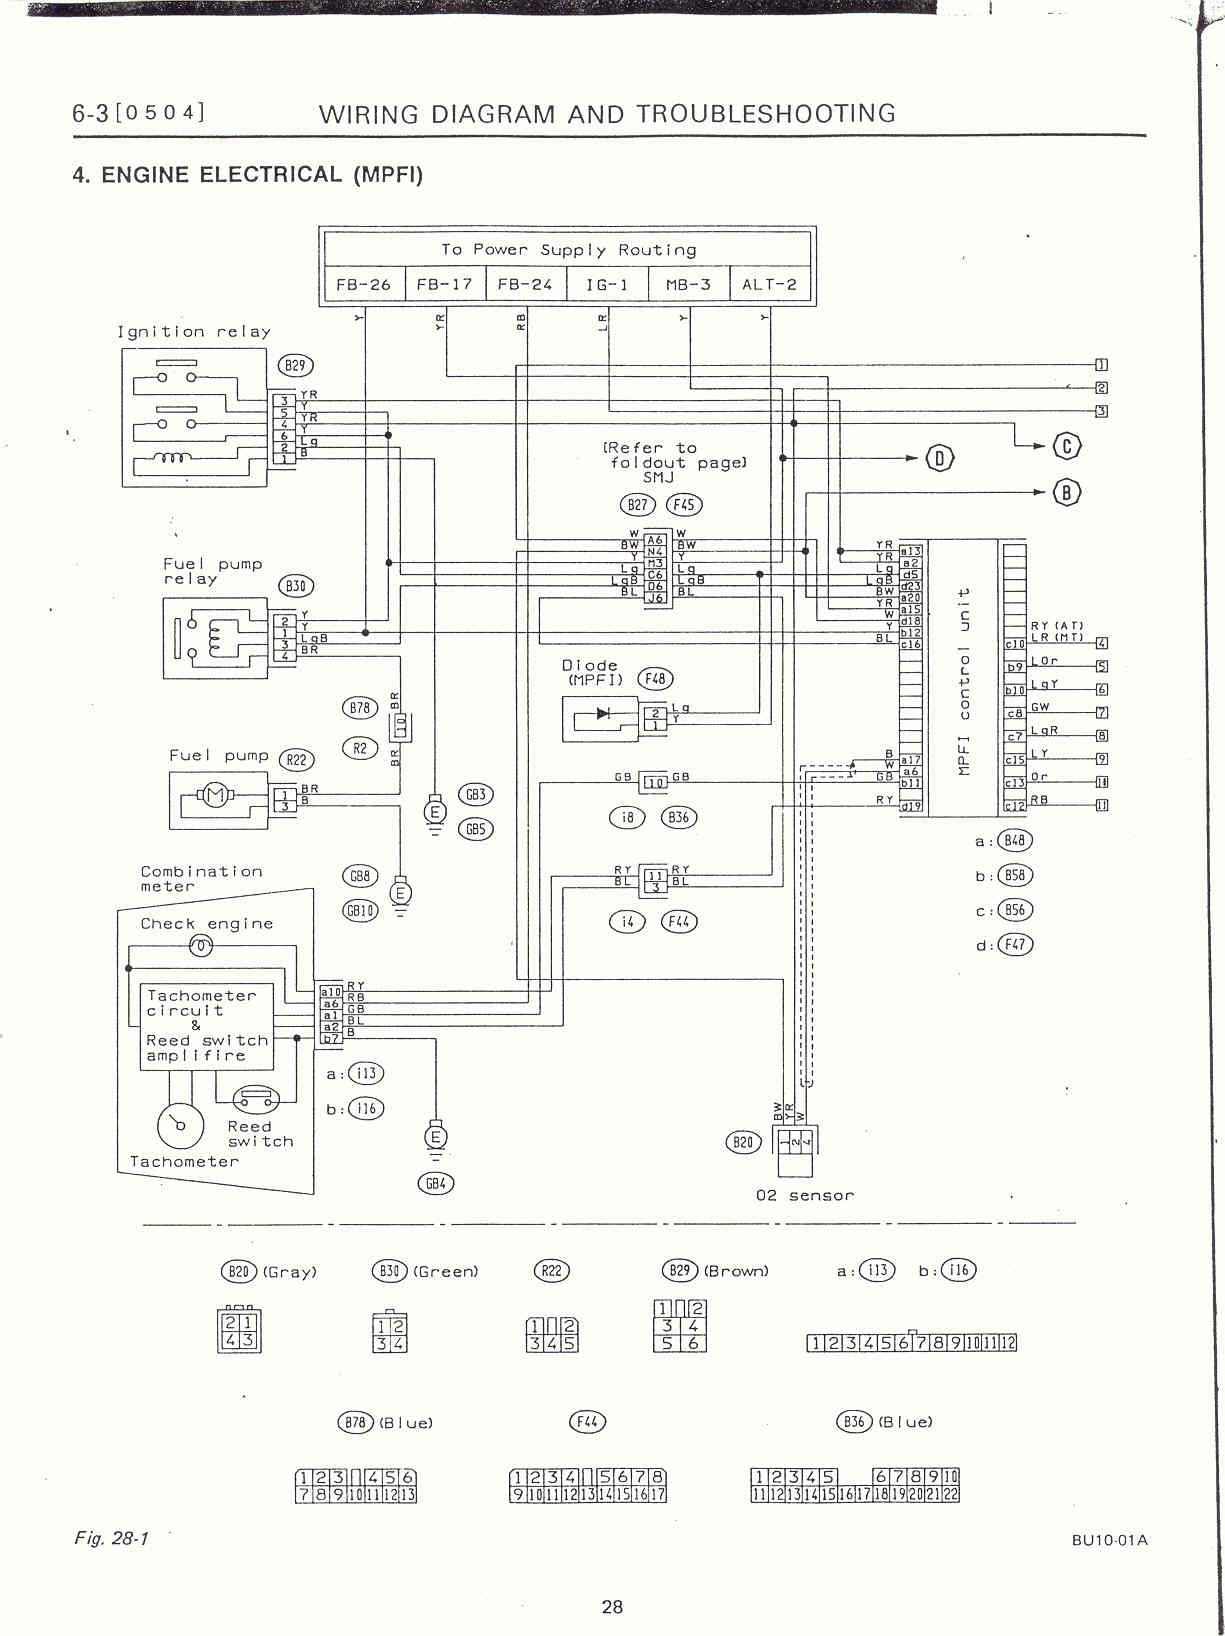 30 Unique White Rodgers Type 91 Relay Wiring Diagram